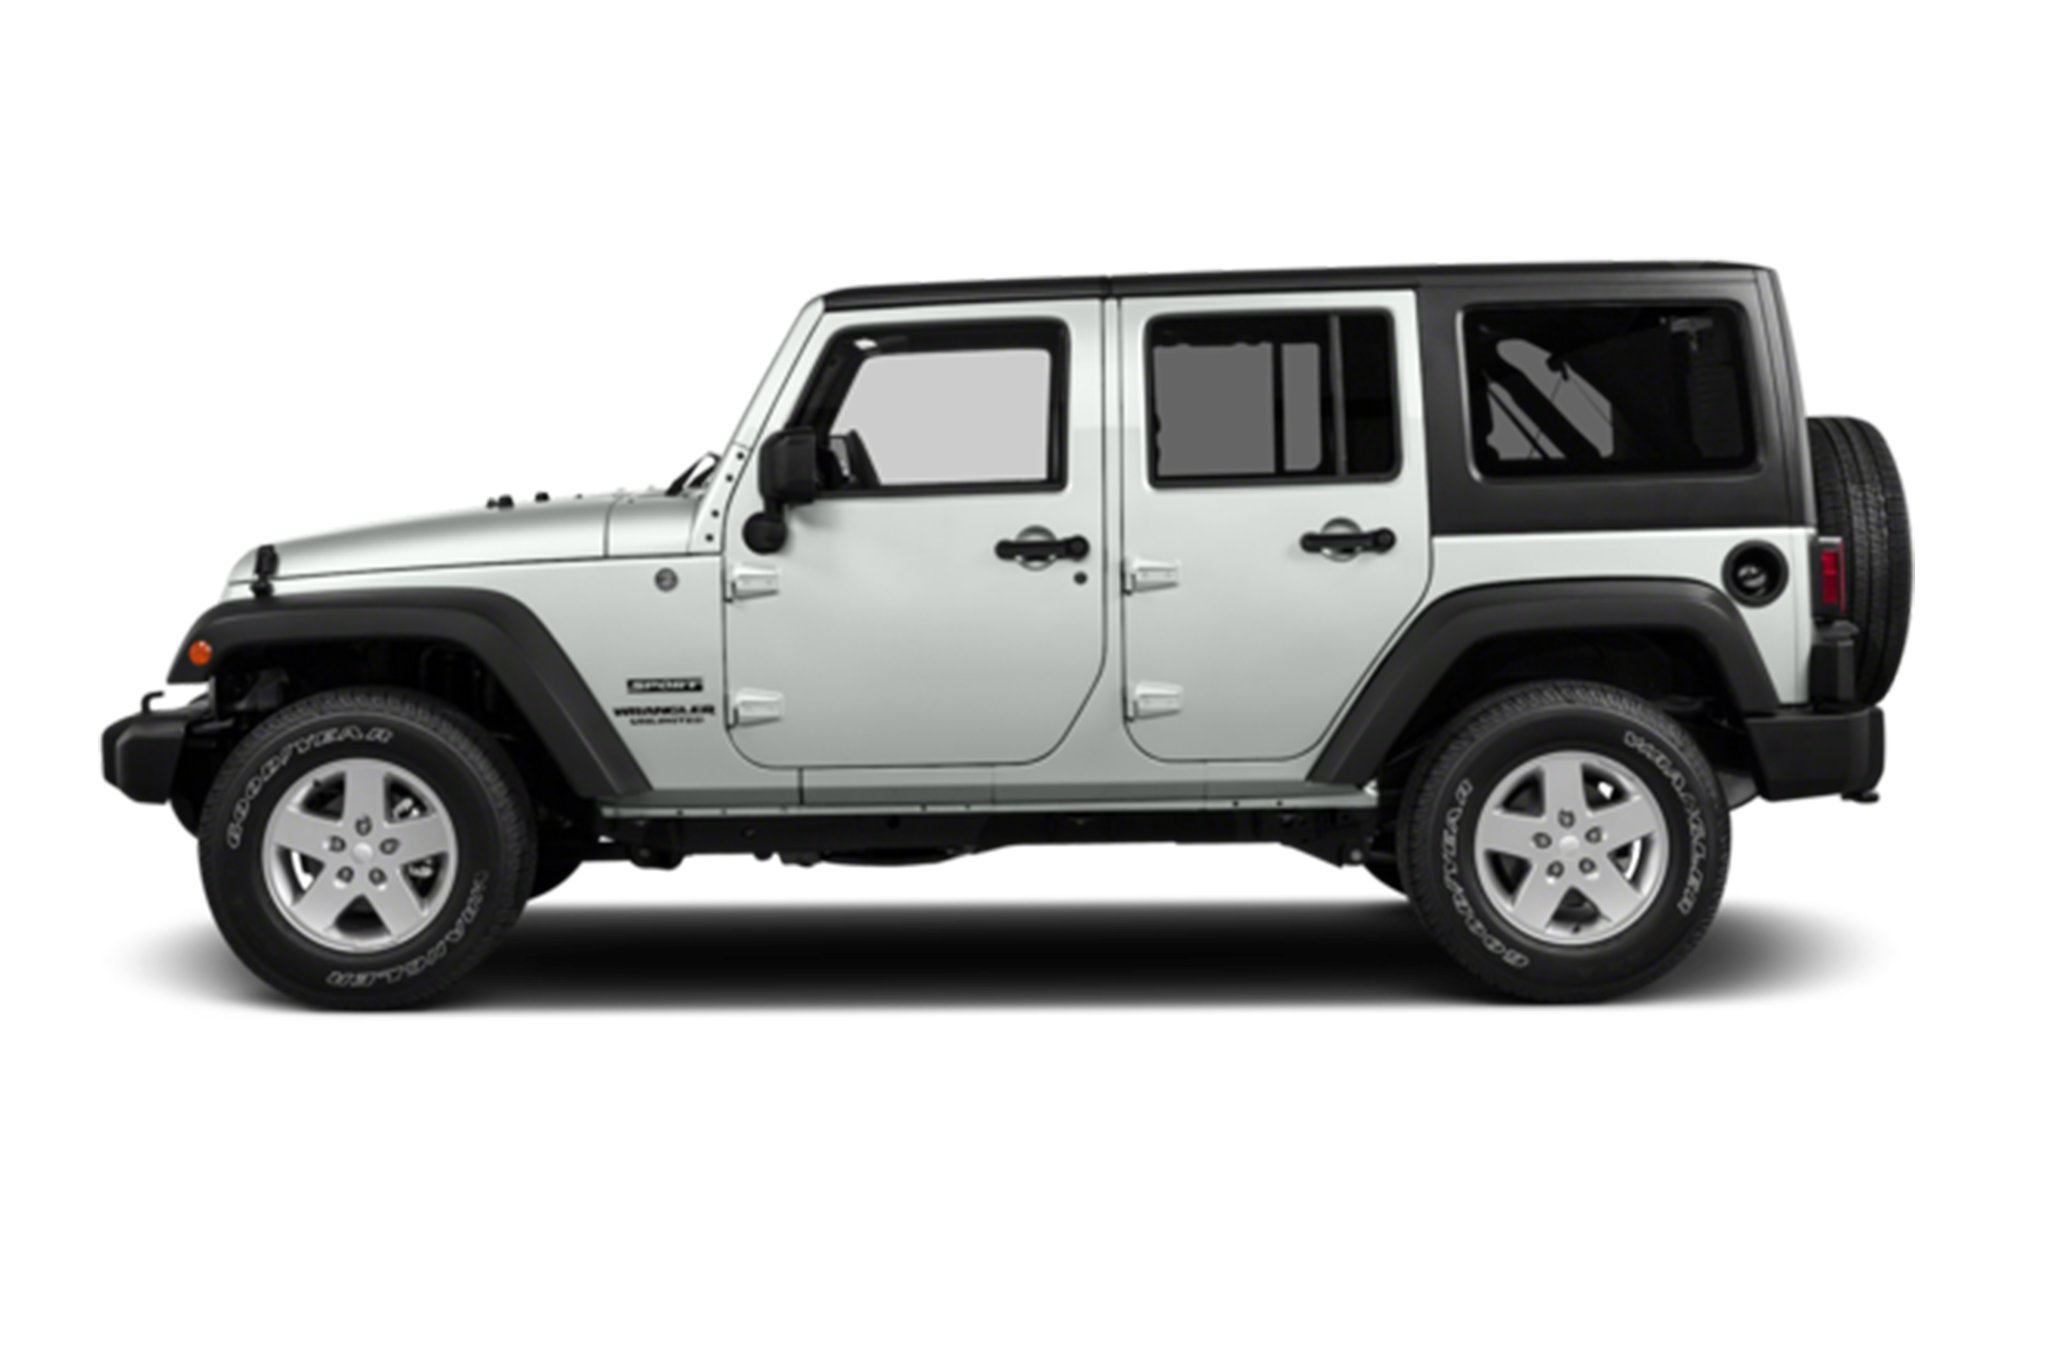 New Jeep Wrangler Unlimited Delray Beach FL